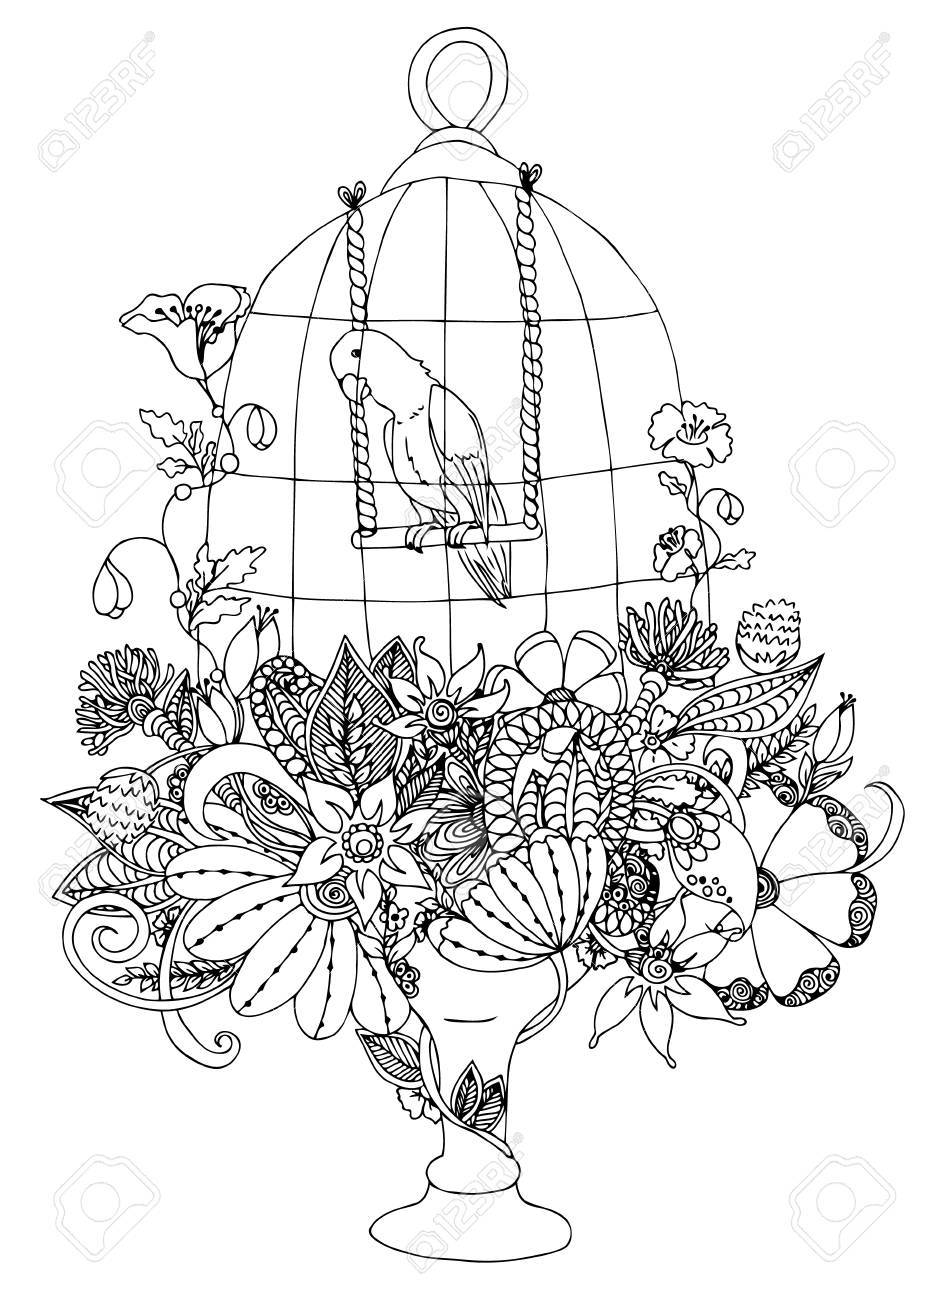 Illustration Cage With A Parrot And Flowers. Coloring Book Anti ...